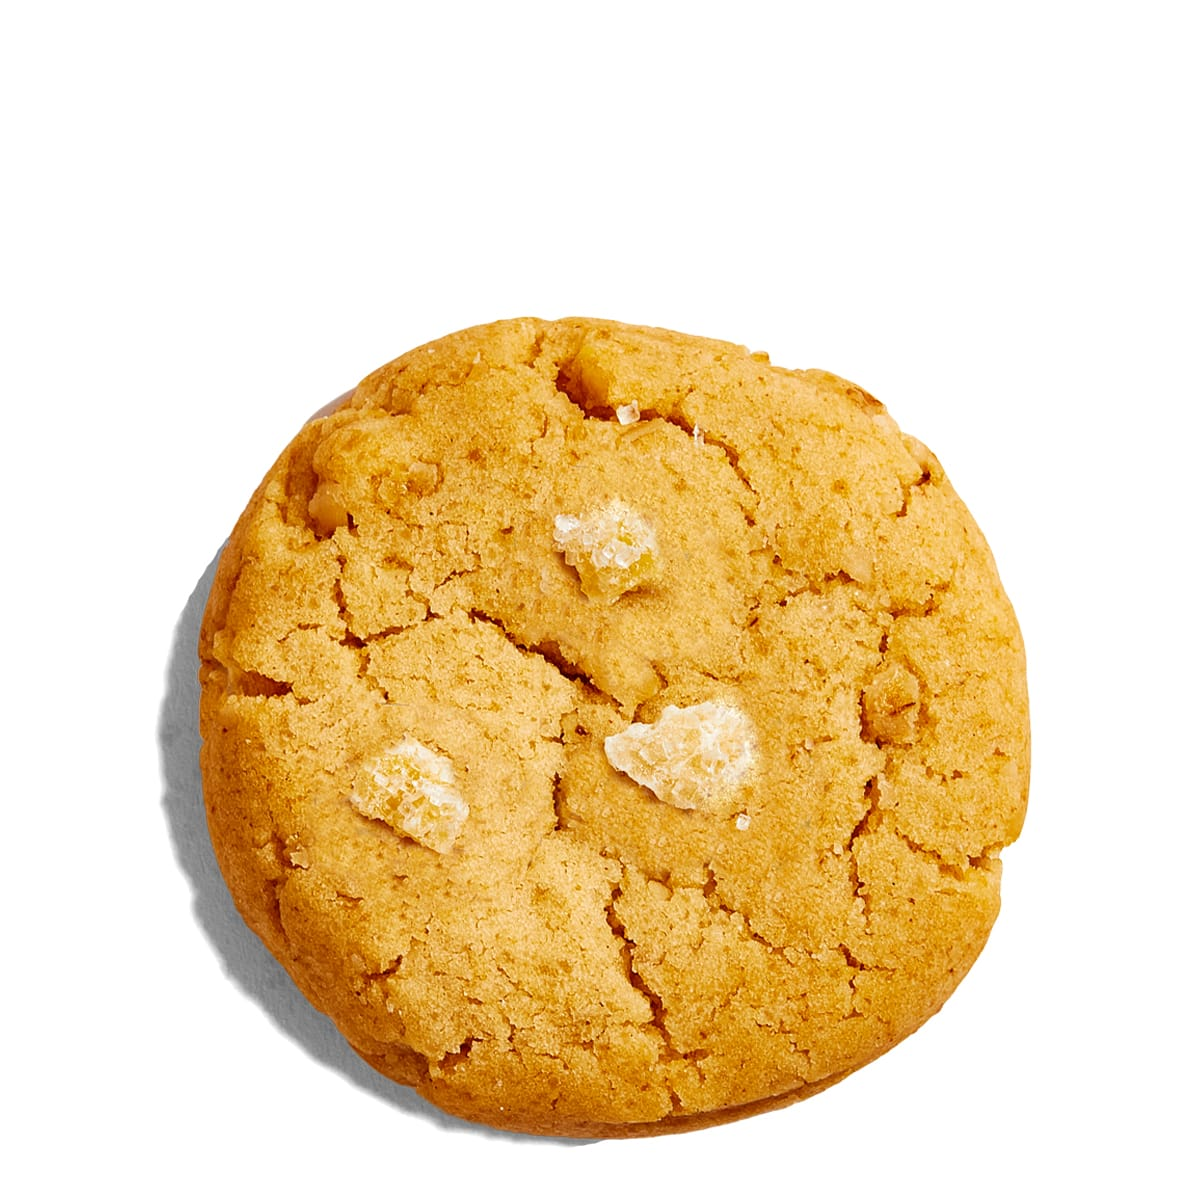 Partake Ginger Snap Soft Baked Cookies, cookie